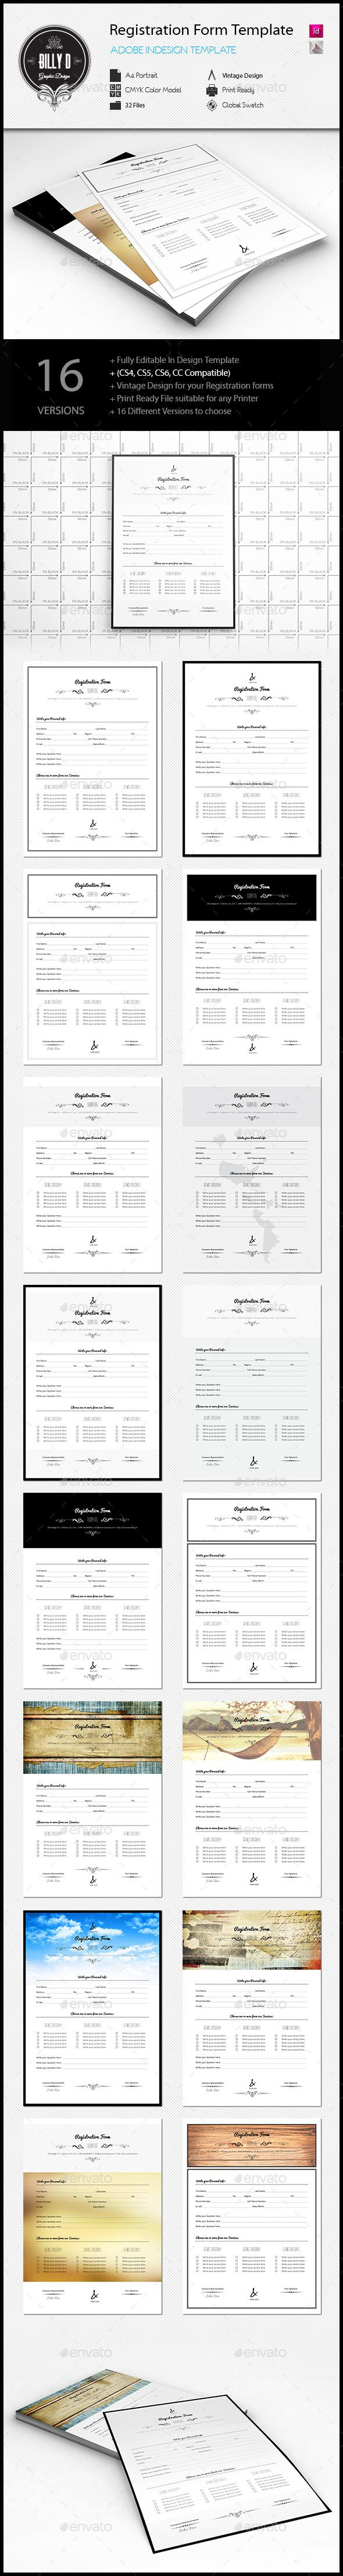 Registration Form Template (CS4, 21x29.7, a4, form, form template, indesign, registration form, vintage)